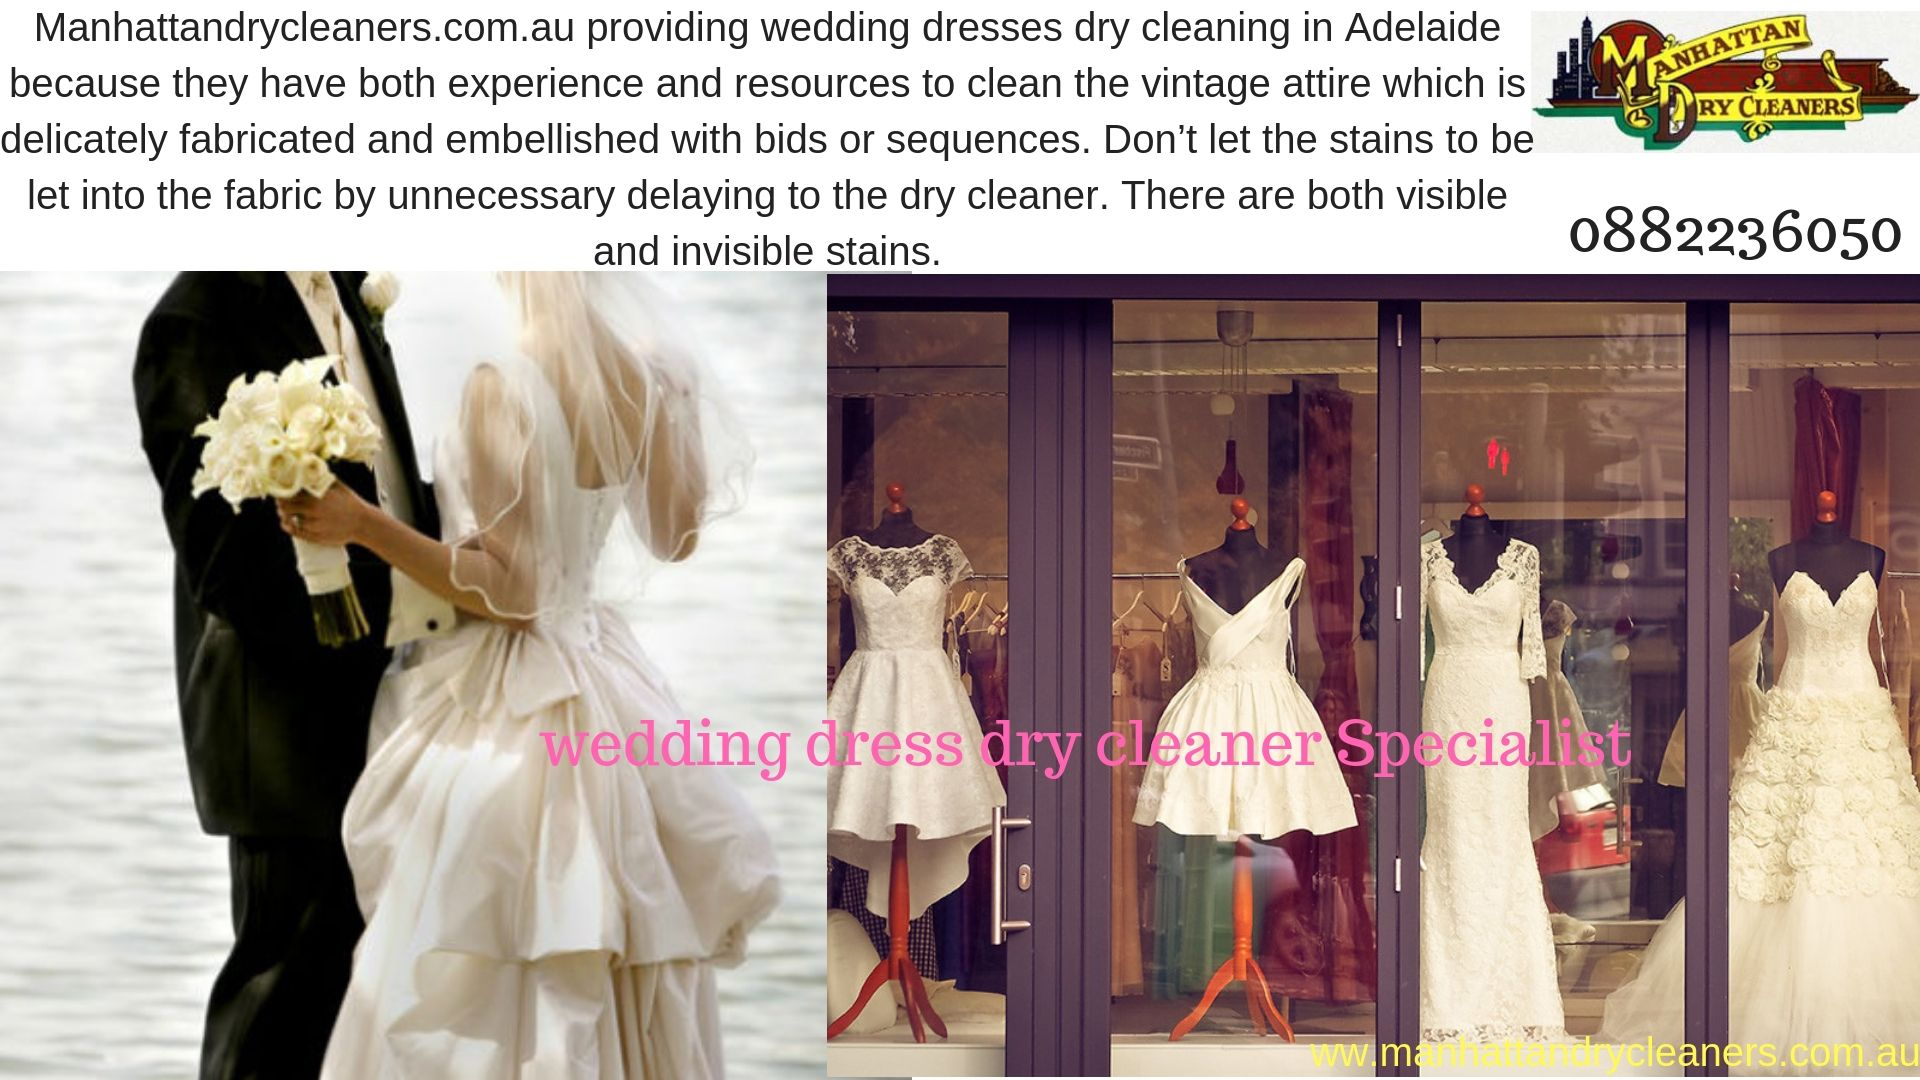 Manhattan Dry Cleaners Is The Only Name That Qualifies All The Requisite Criteria And Is Backed By Positive Word Dress Cleaning Wedding Dresses Leather Dresses